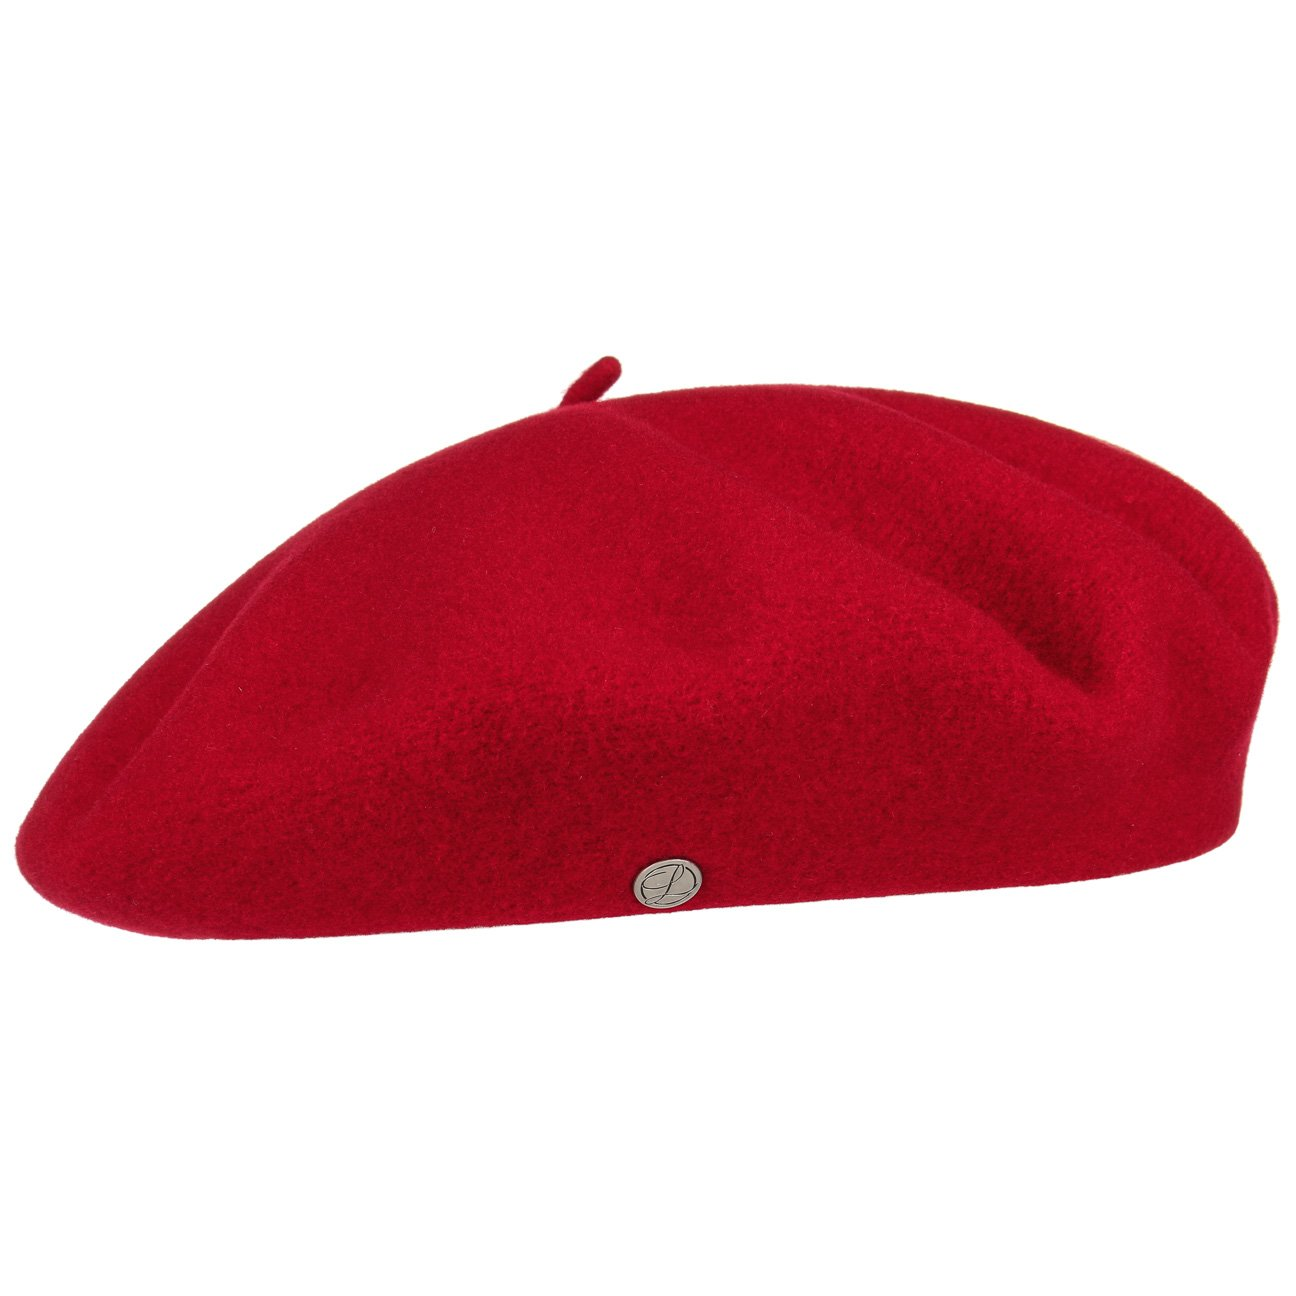 Authentique Classic Wool Beret - Red